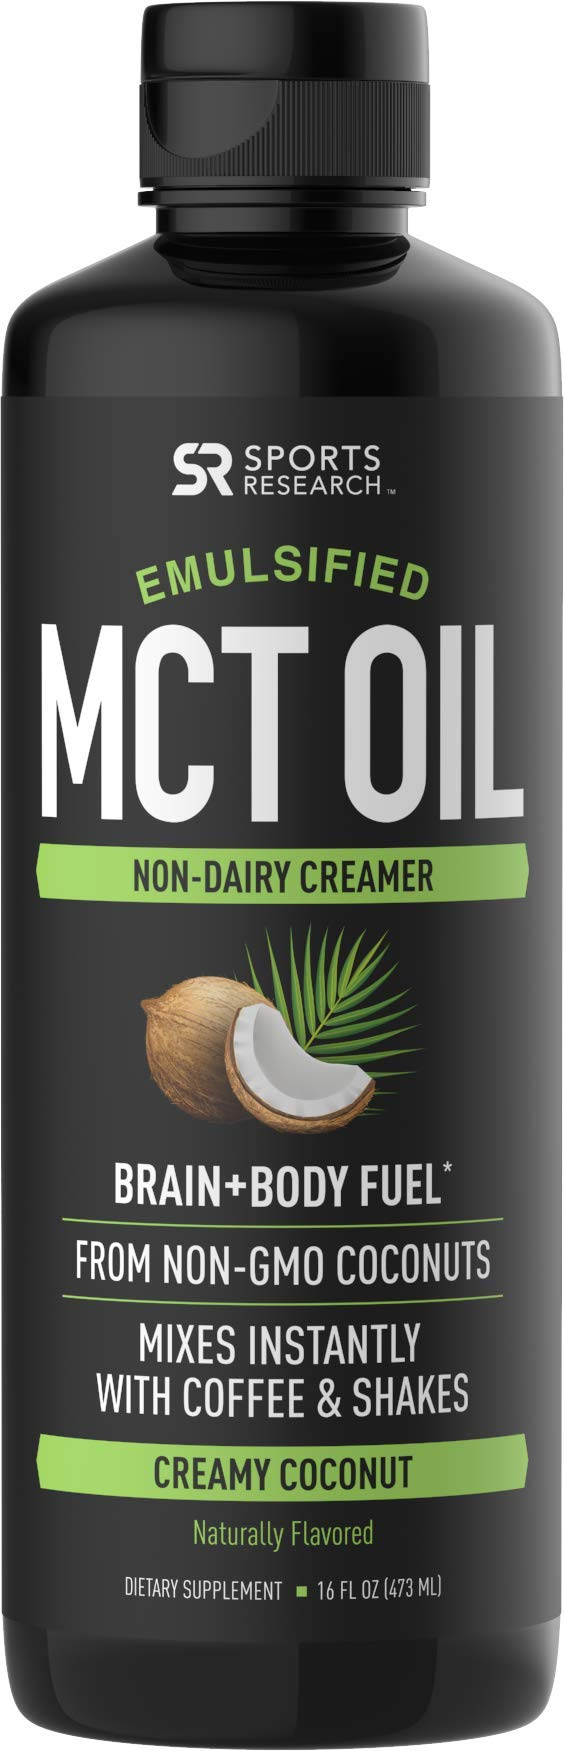 Emulsified MCT Oil (16oz) Made from Non-GMO Coconuts ~ Non-Dairy Creamer for Cold Brew, Keto Coffee, Protein Shakes, Salads & More ~ No Blending Required ! (Creamy Coconut Flavor)